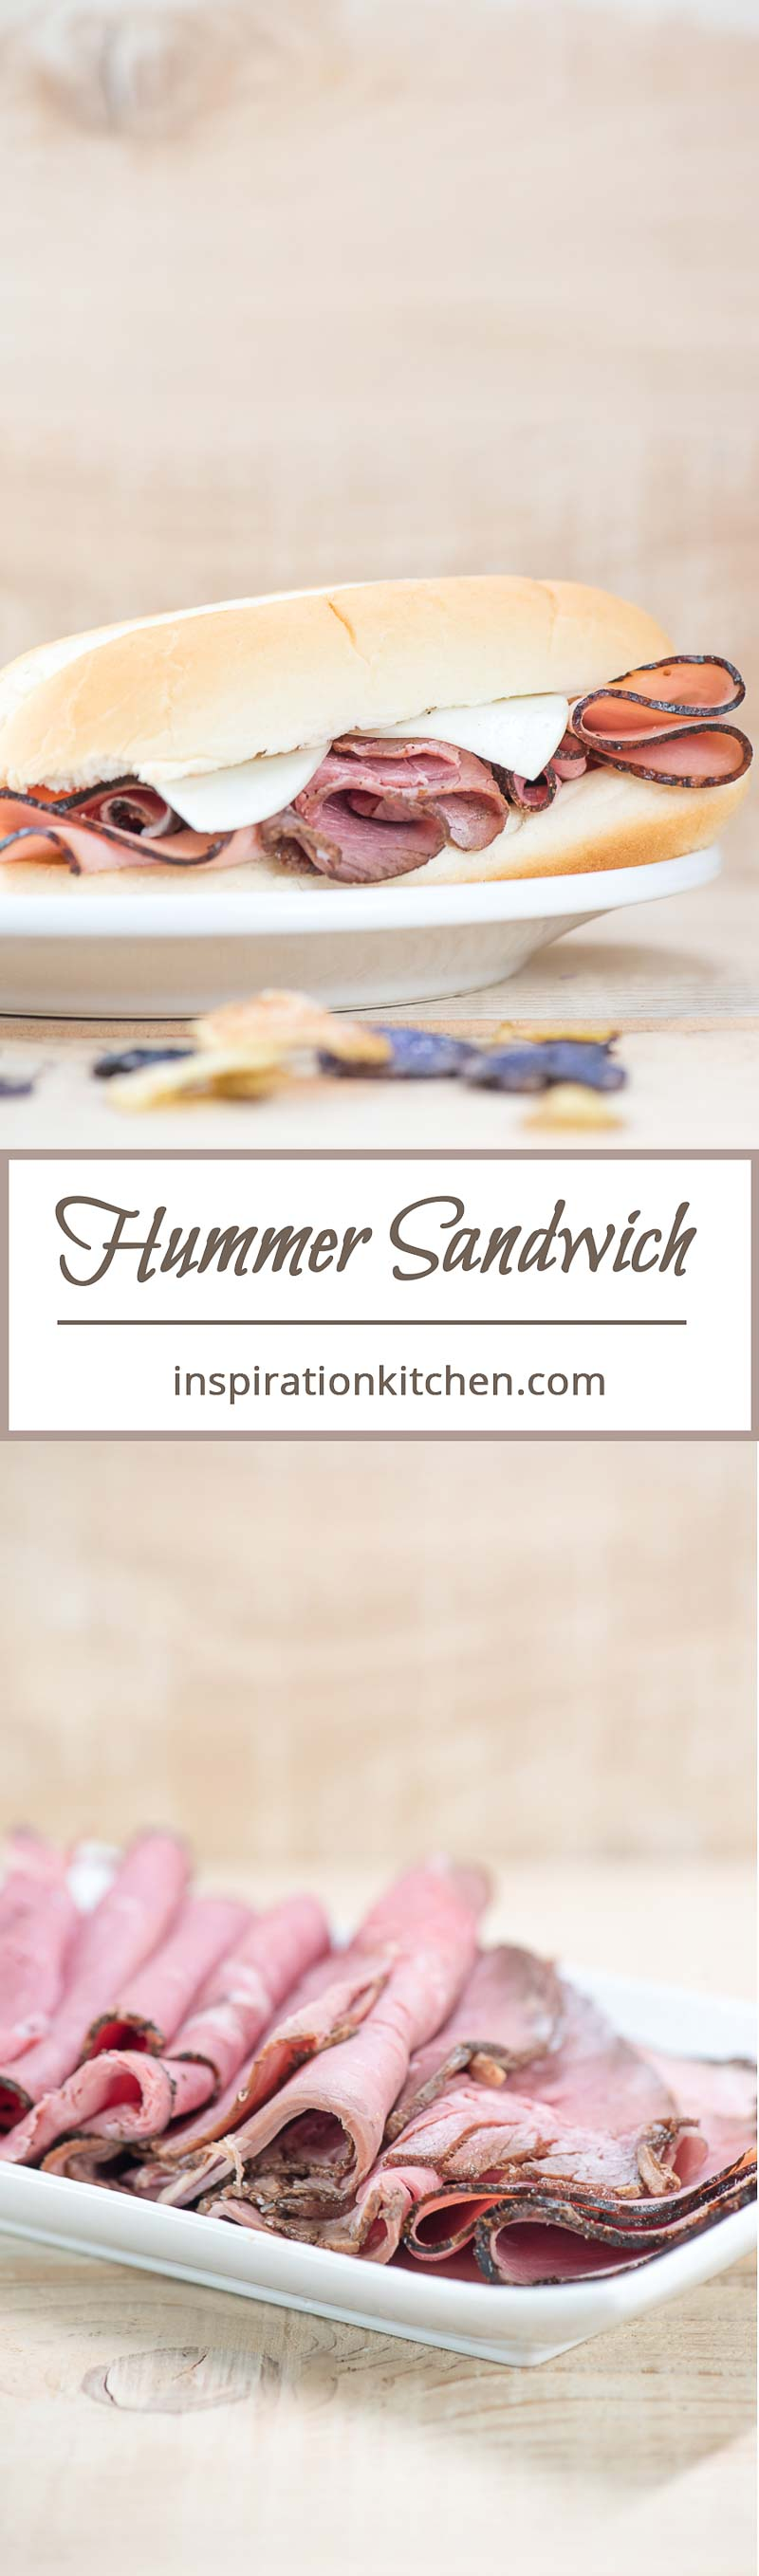 Hummer Sandwich | Inspiration Kitchen